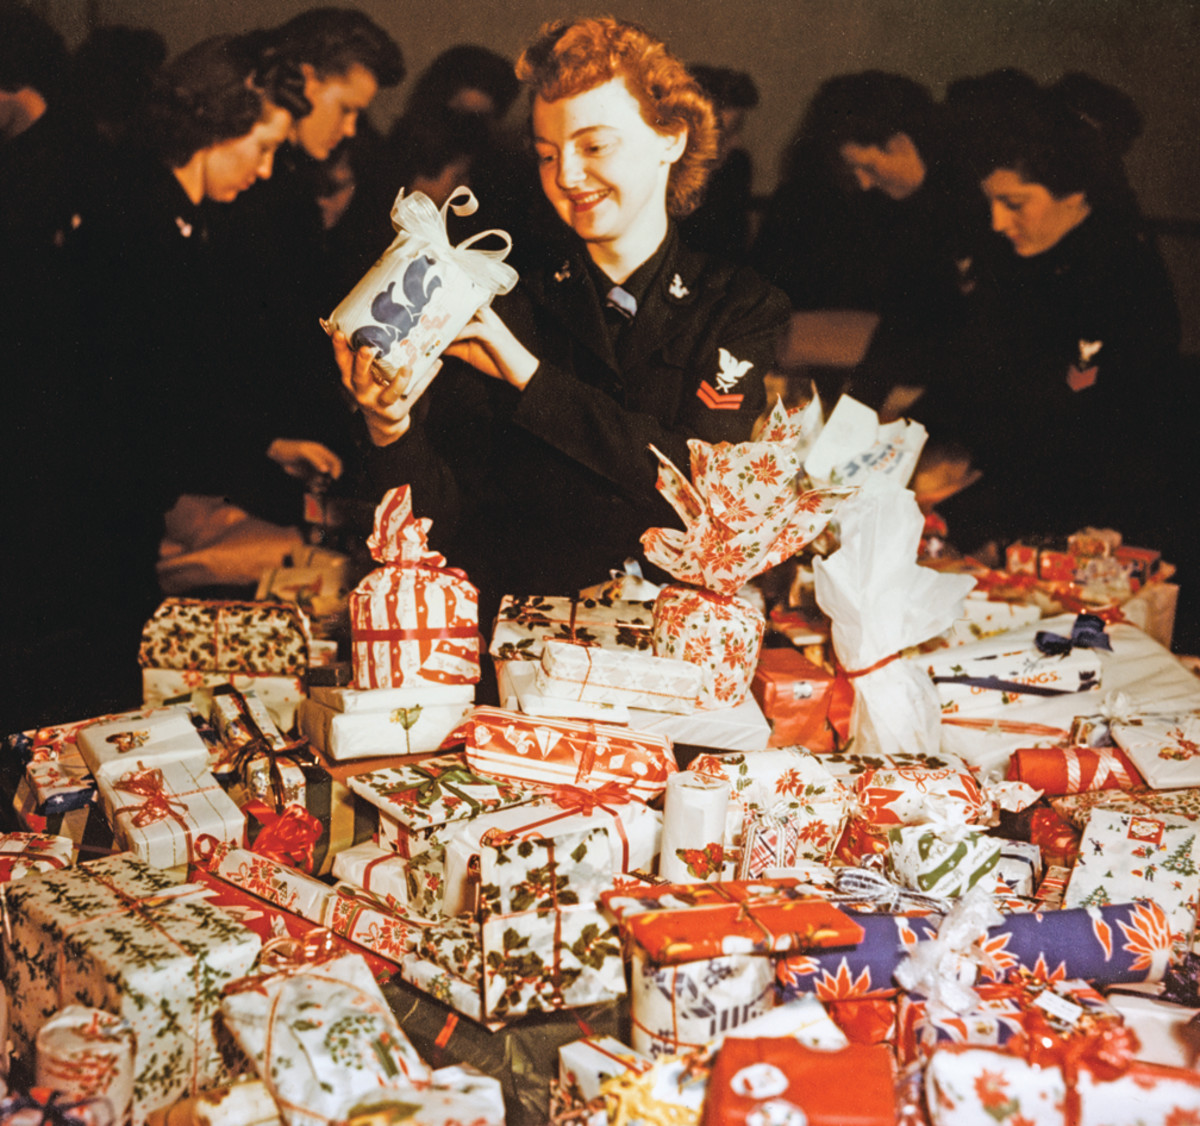 WAVES play Santa WAVES of the Bureau of Supplies and Accounts help wrap Christmas presents for Navy and Marine Corps convalescents at the Bethesda Naval Hospital, Maryland, circa 1944. Admiring a package is Yeoman 2nd Class Ann G. Fee.